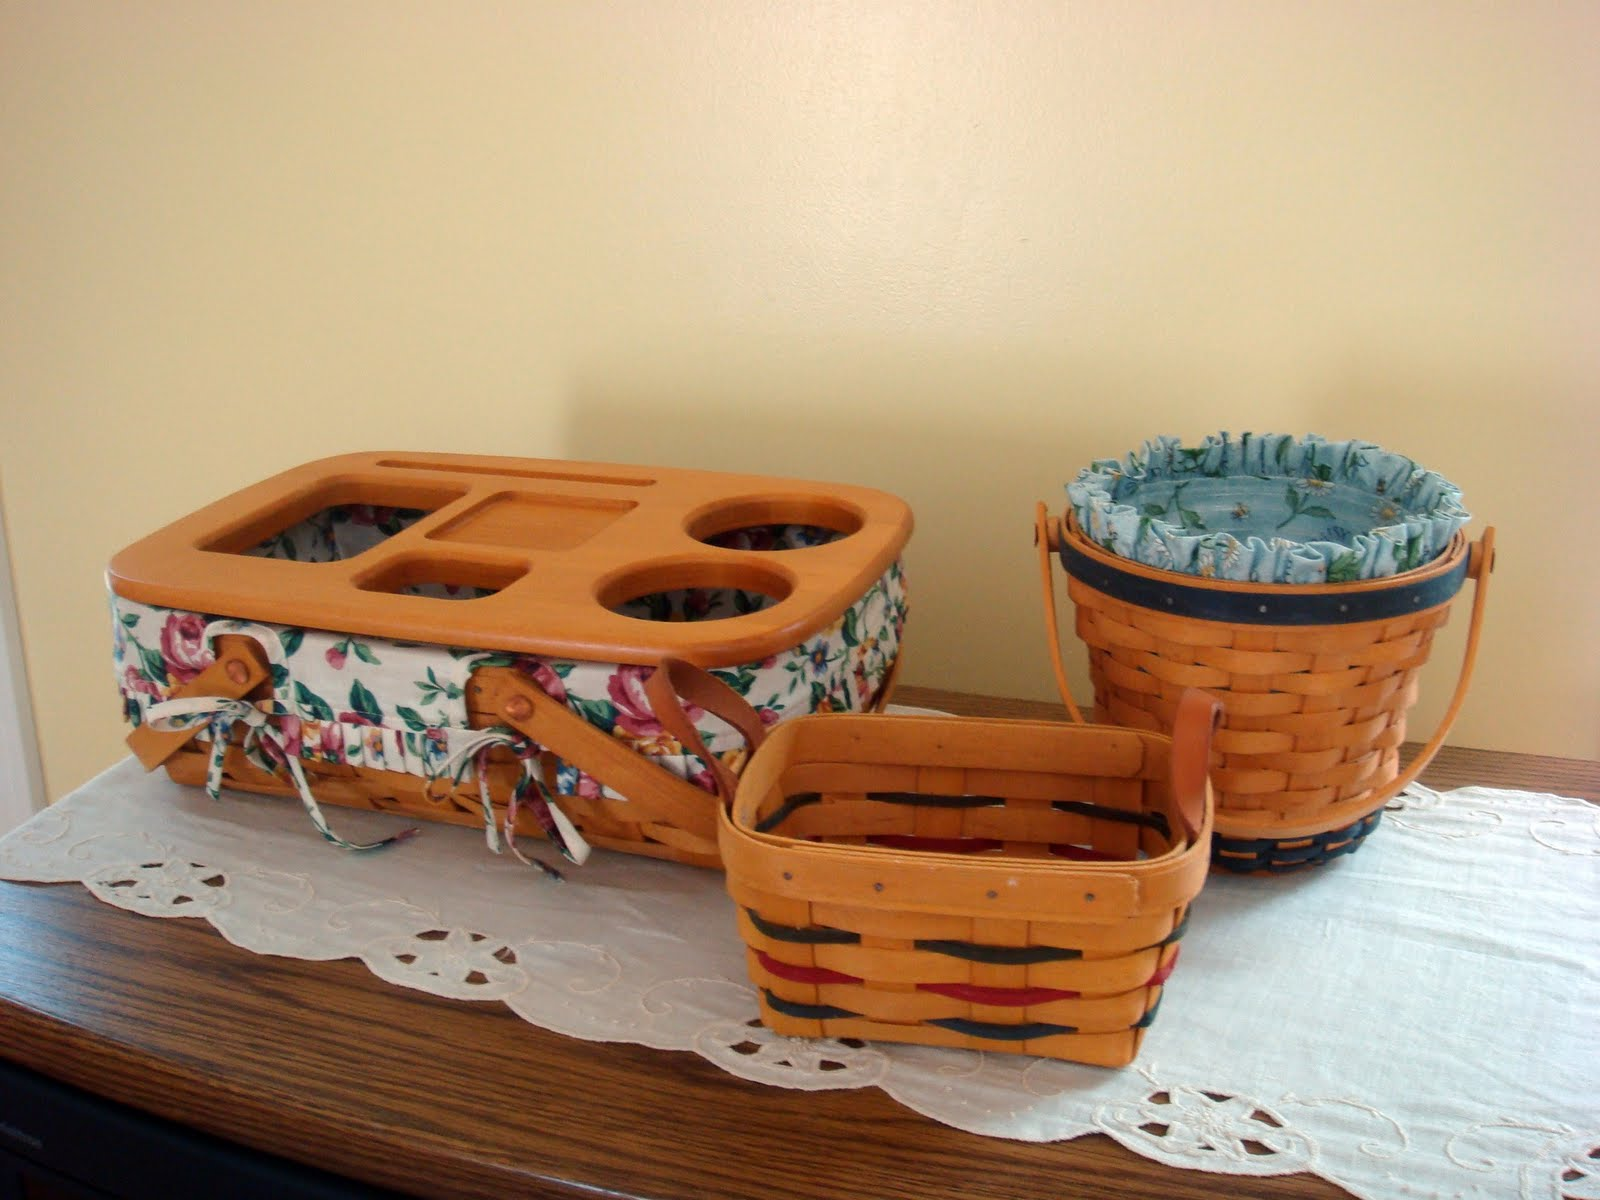 Handy Man, Crafty Woman: Have You Seen These (Longaberger) Baskets?